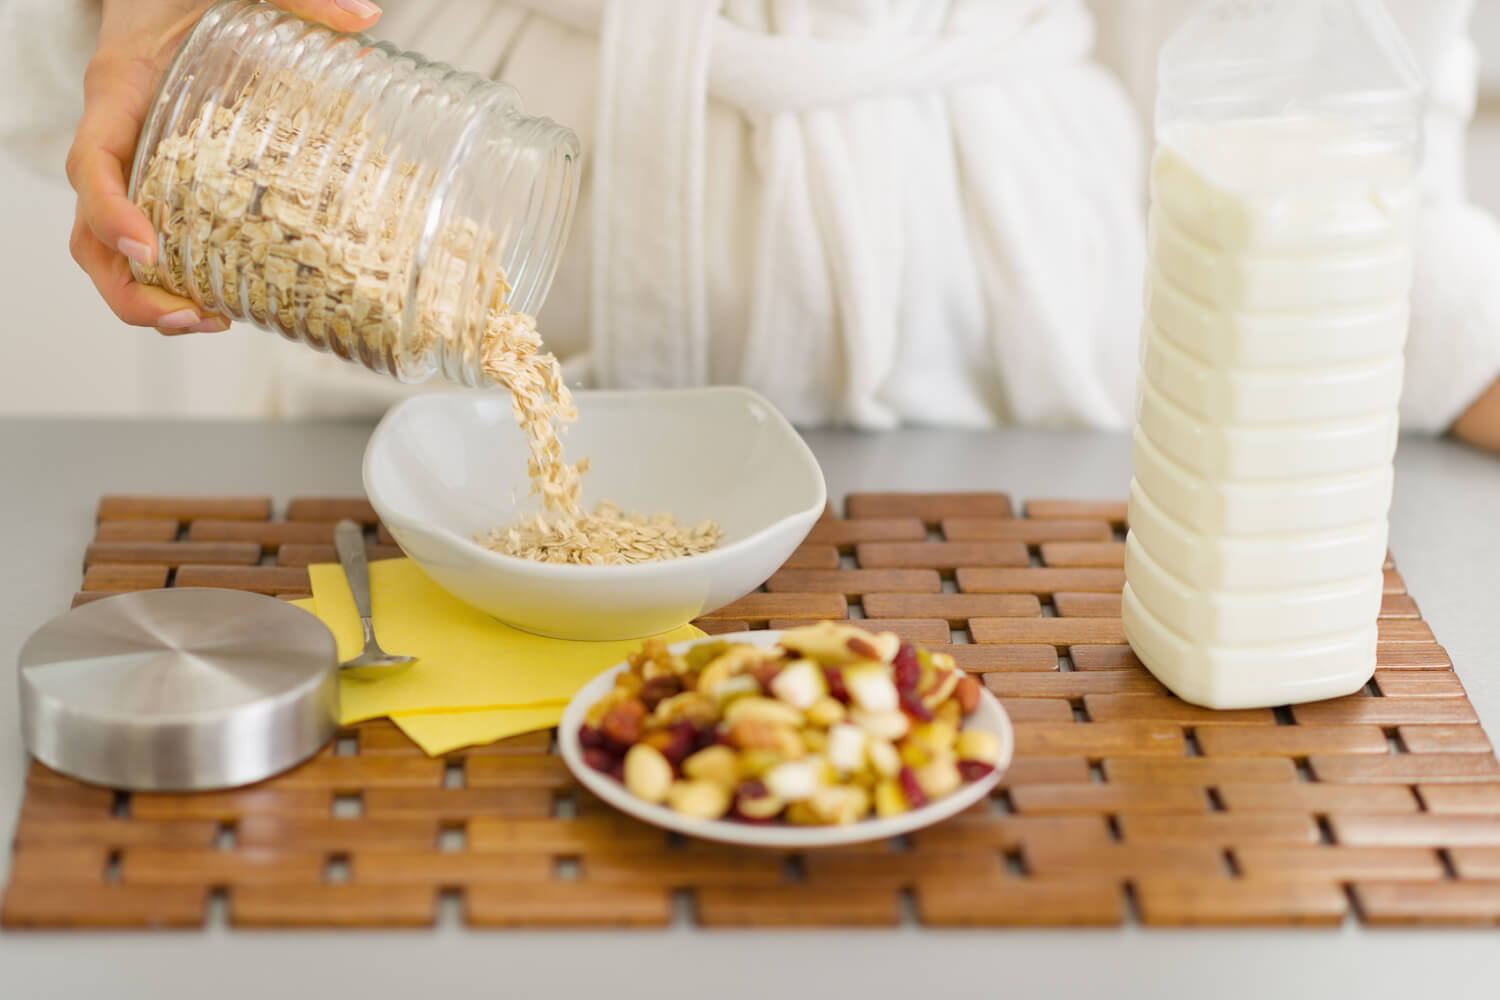 tips to have oats during pregnancy